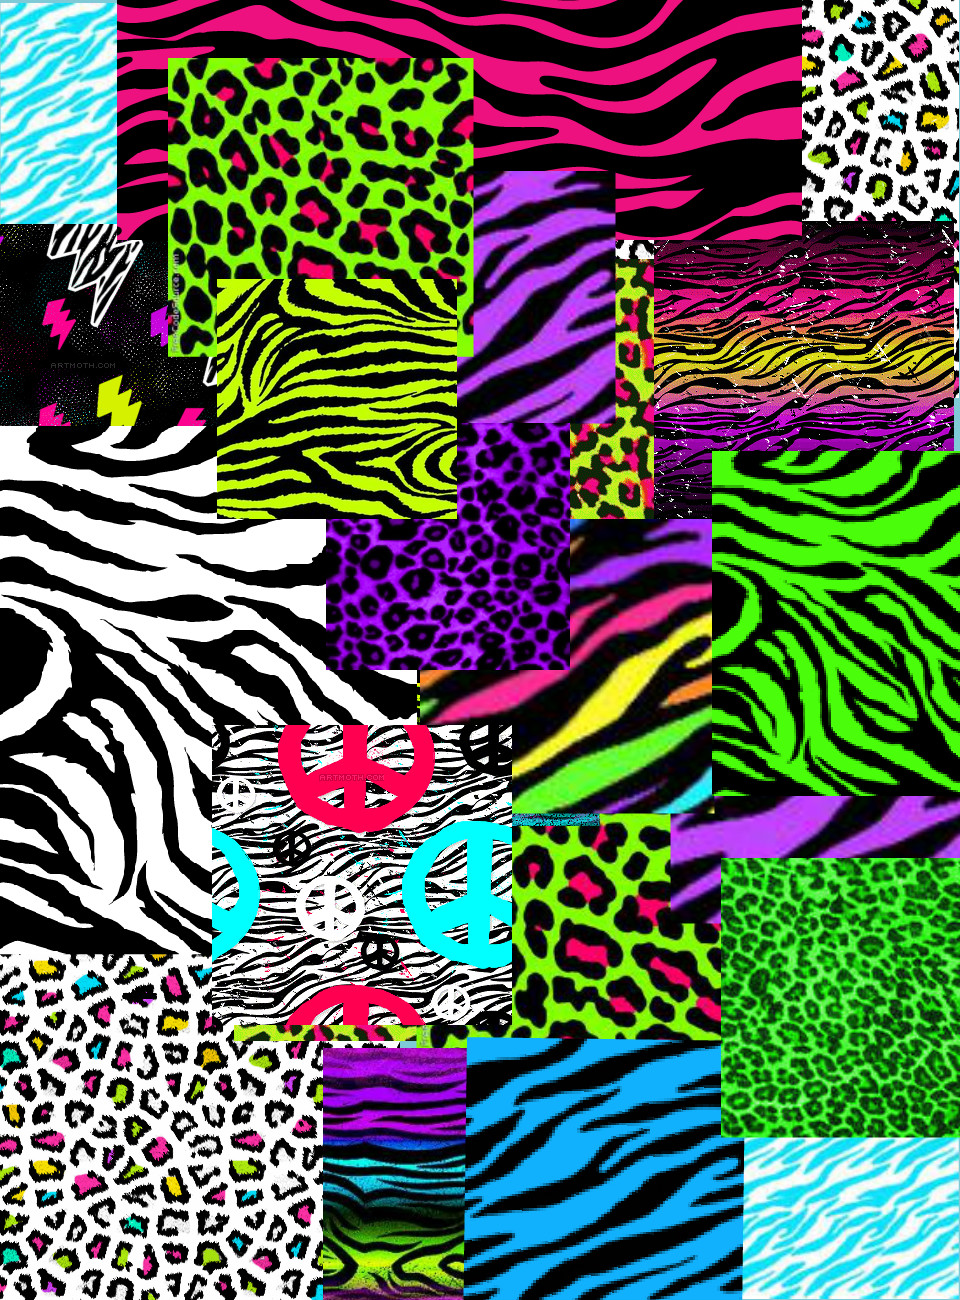 Colorful Neon Zebra Print Wallpaper Colorful neon zebra print 960x1300